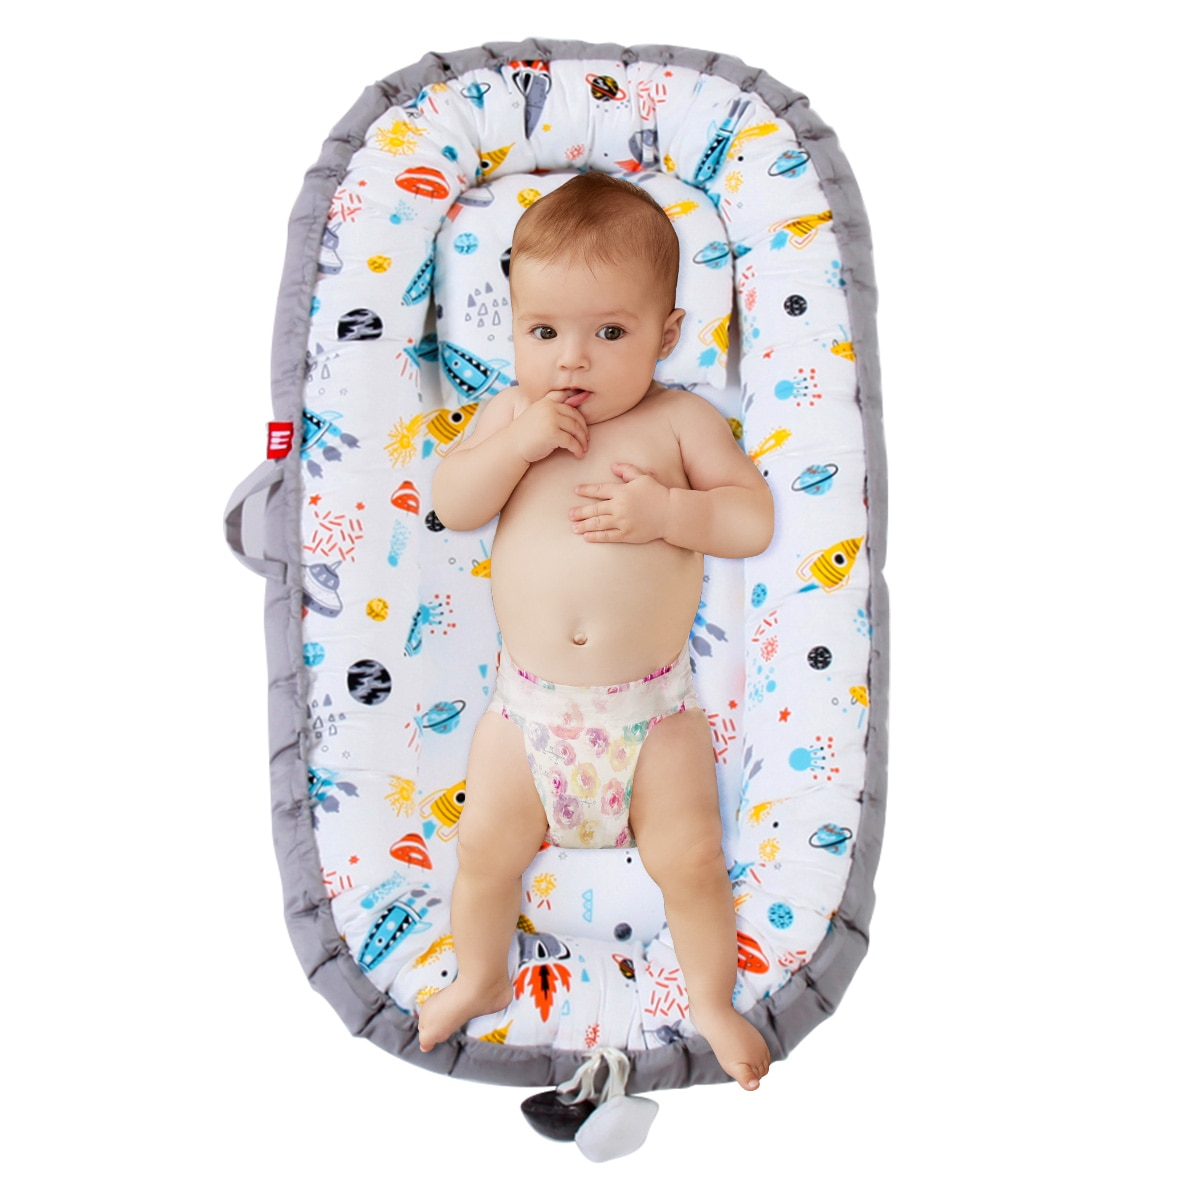 Portable Baby Lounger Travel Newborn Bed Detachable Infant Co-Sleeping Bassinet Mattress For 0-2 Years Old Babies